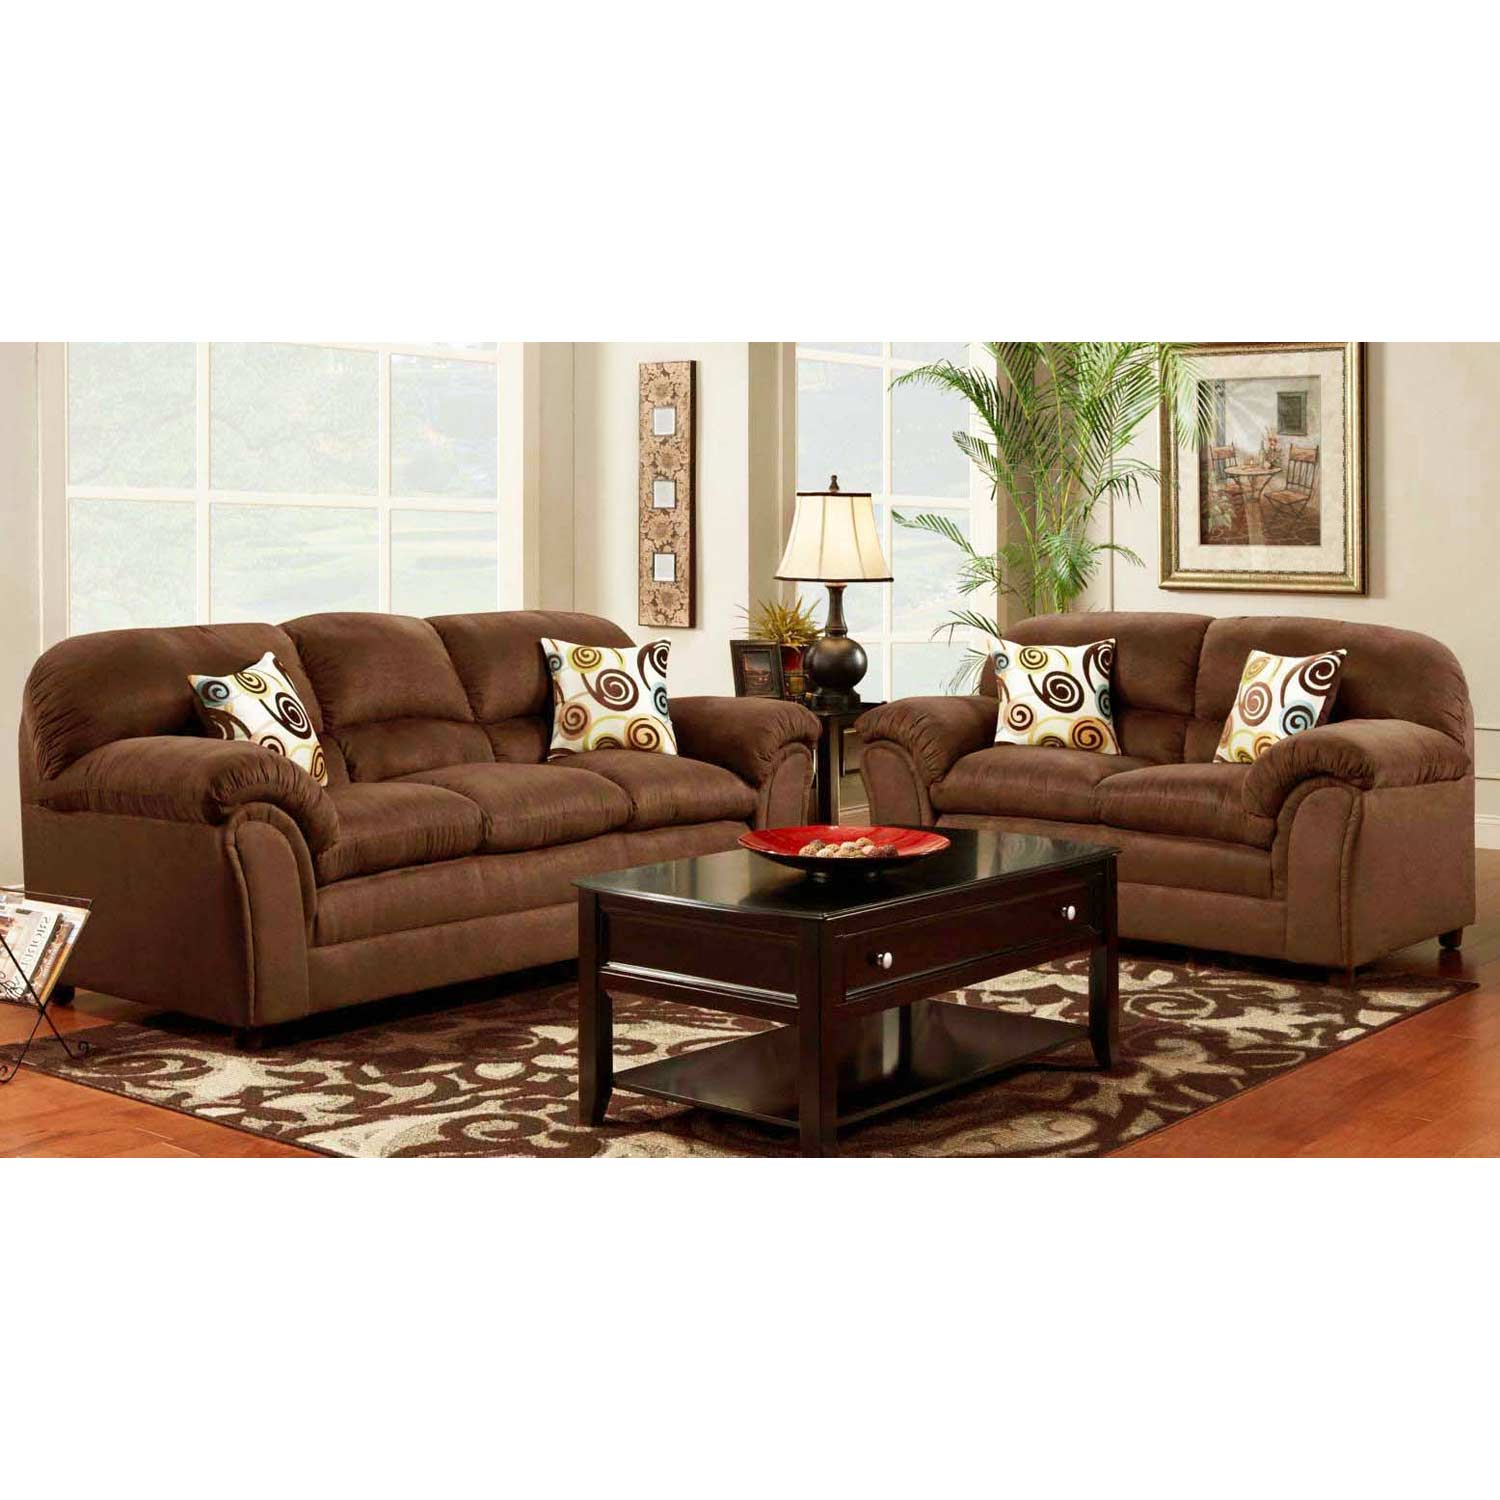 Joyce Padded Fabric Loveseat - Flat Suede Chocolate - CHF-471250-L-FC